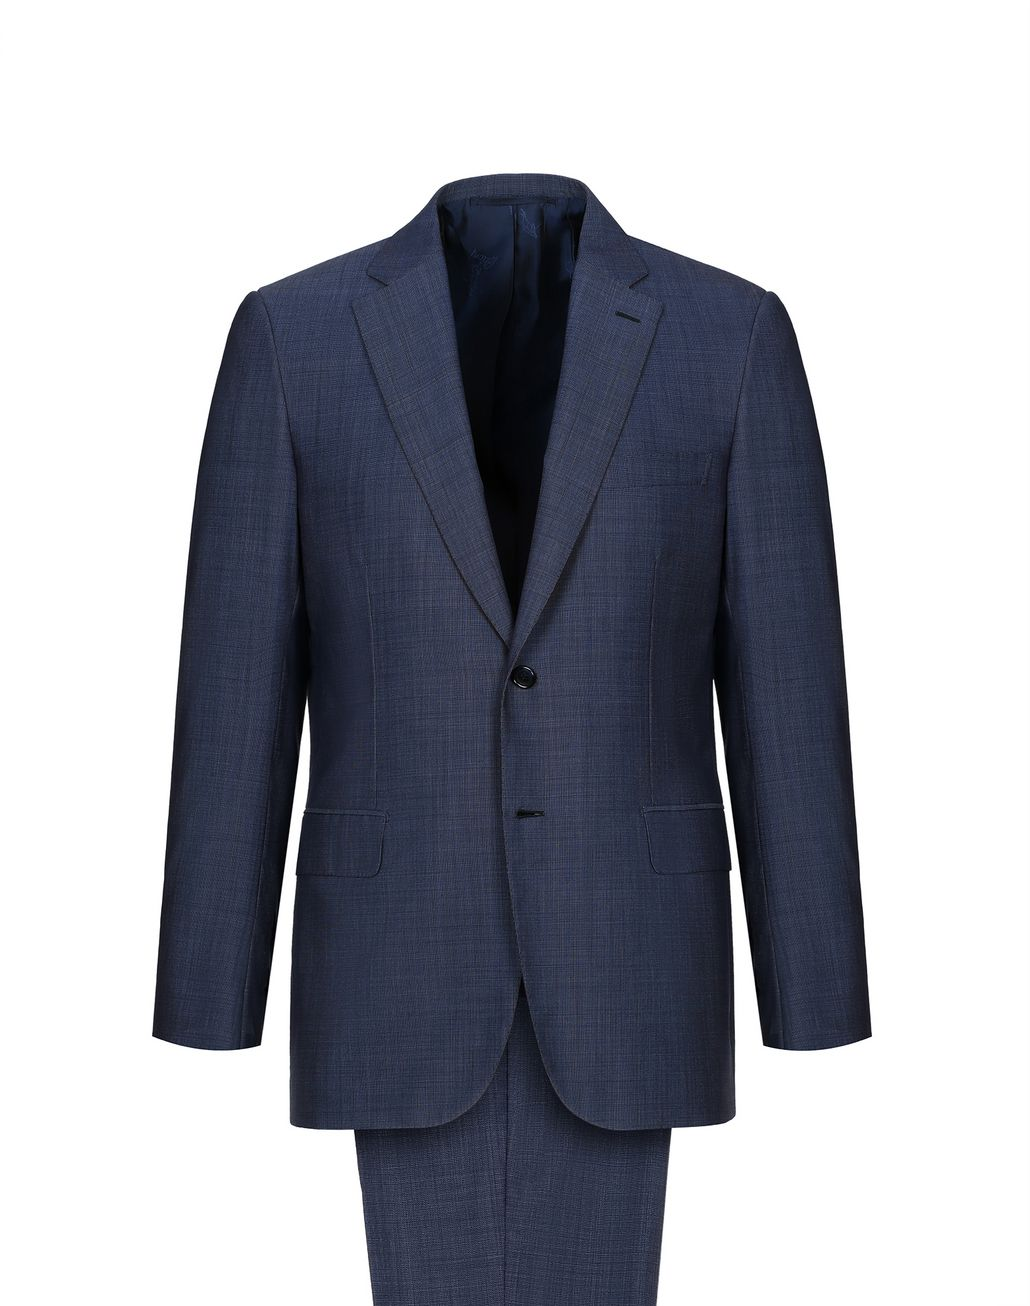 BRIONI Navy Blue Micro Grisaille Brunico Suit Suits & Jackets [*** pickupInStoreShippingNotGuaranteed_info ***] f